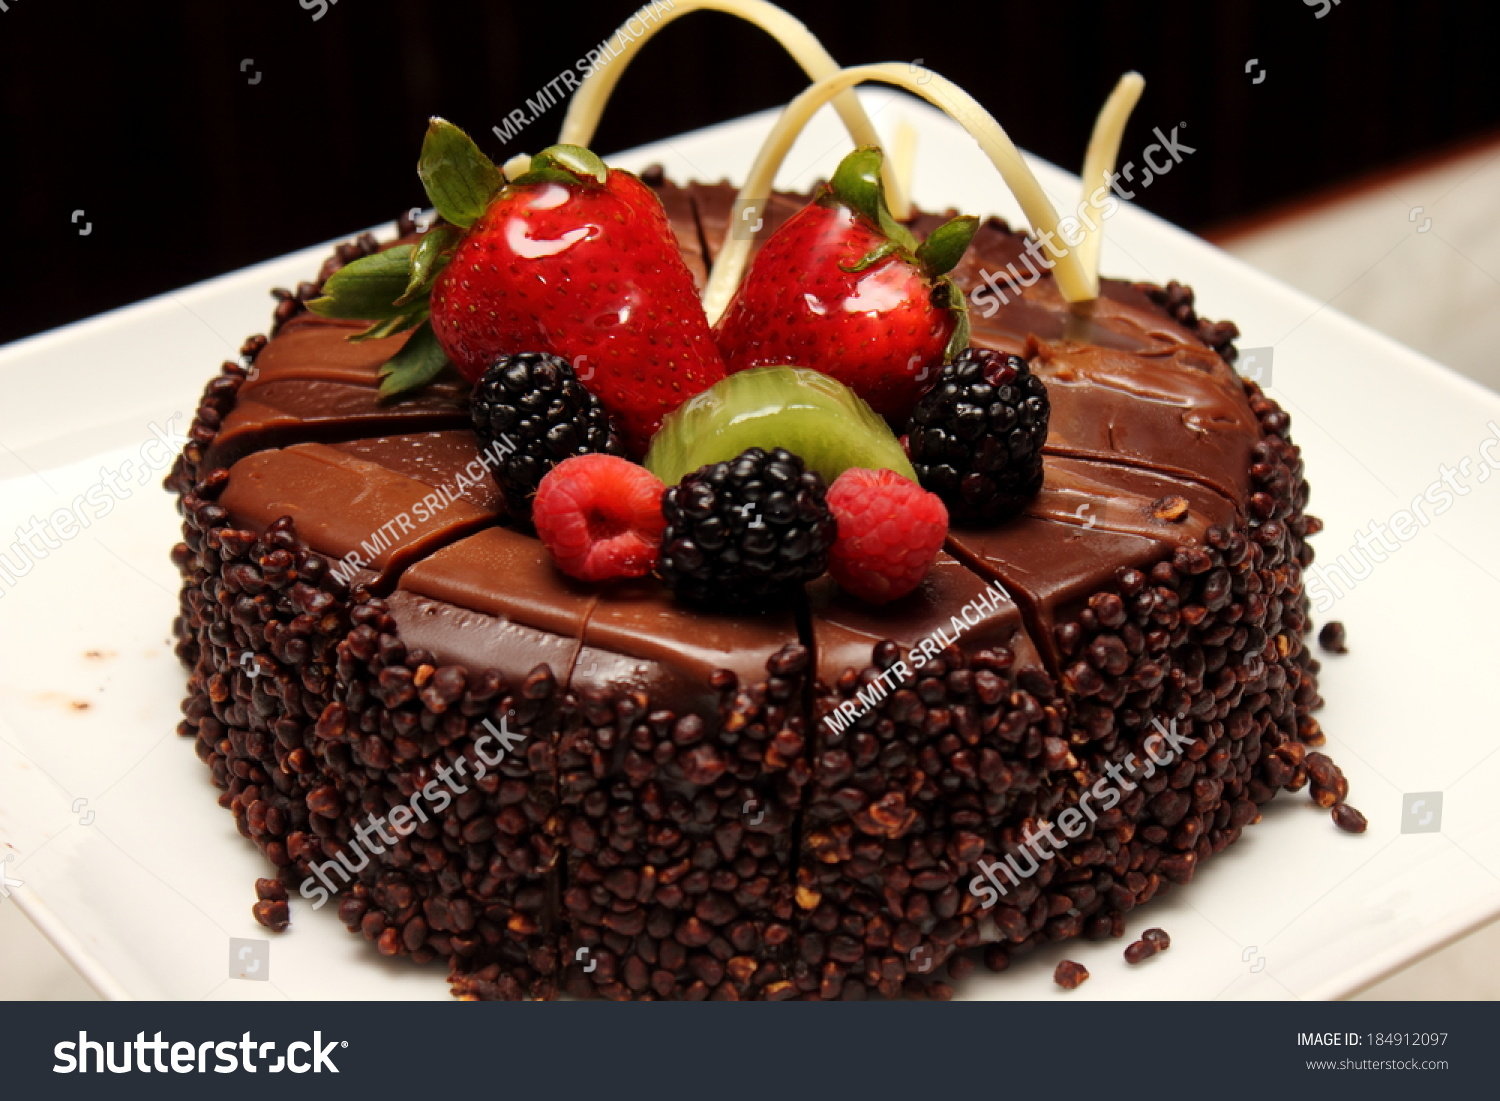 Chocolate Fruit Birthday Cake Recipe ~ Image Inspiration ...